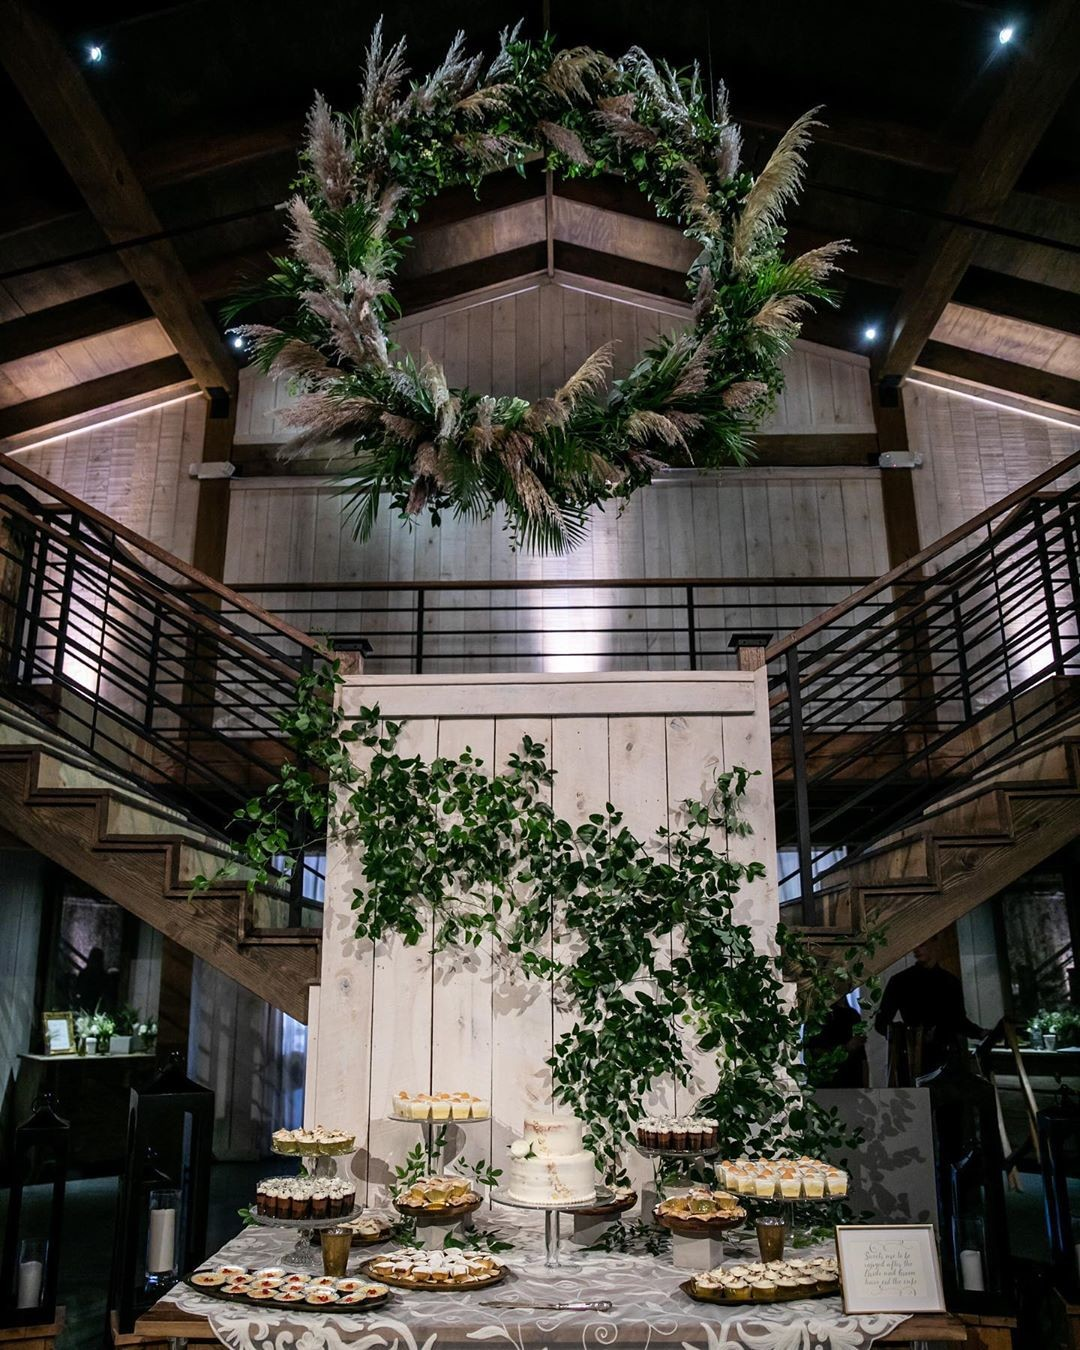 If you were left breathless yesterday with the ceremony shot, we encourage you to sit down before peeking on the inside of the venue